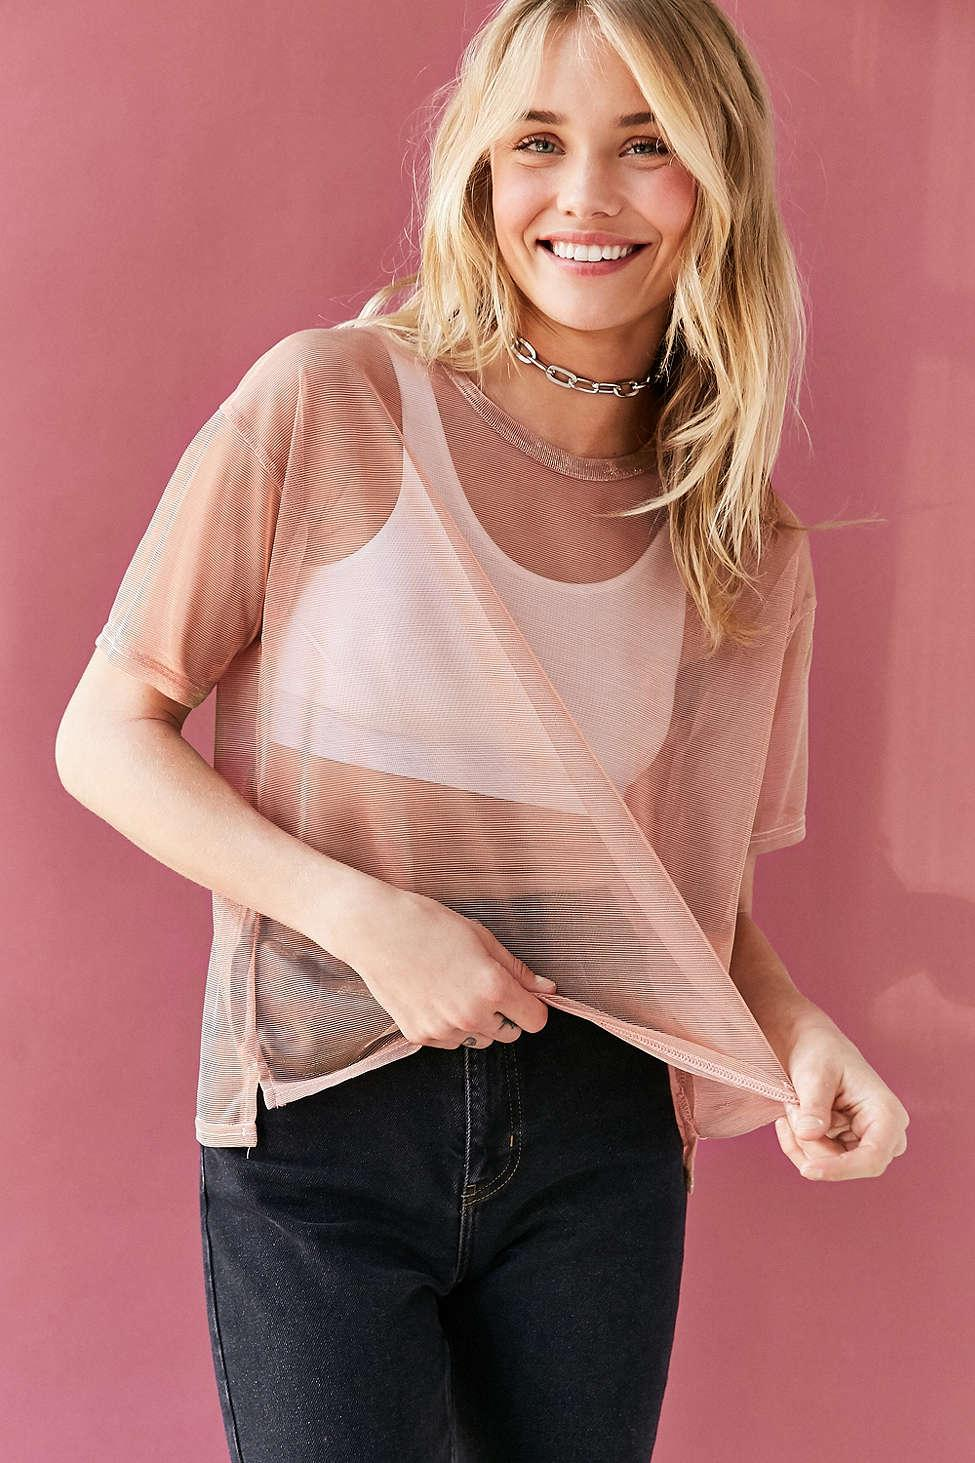 af5369aacd617 Lyst - Silence + Noise Metallic Shimmer Mesh Tee in Pink